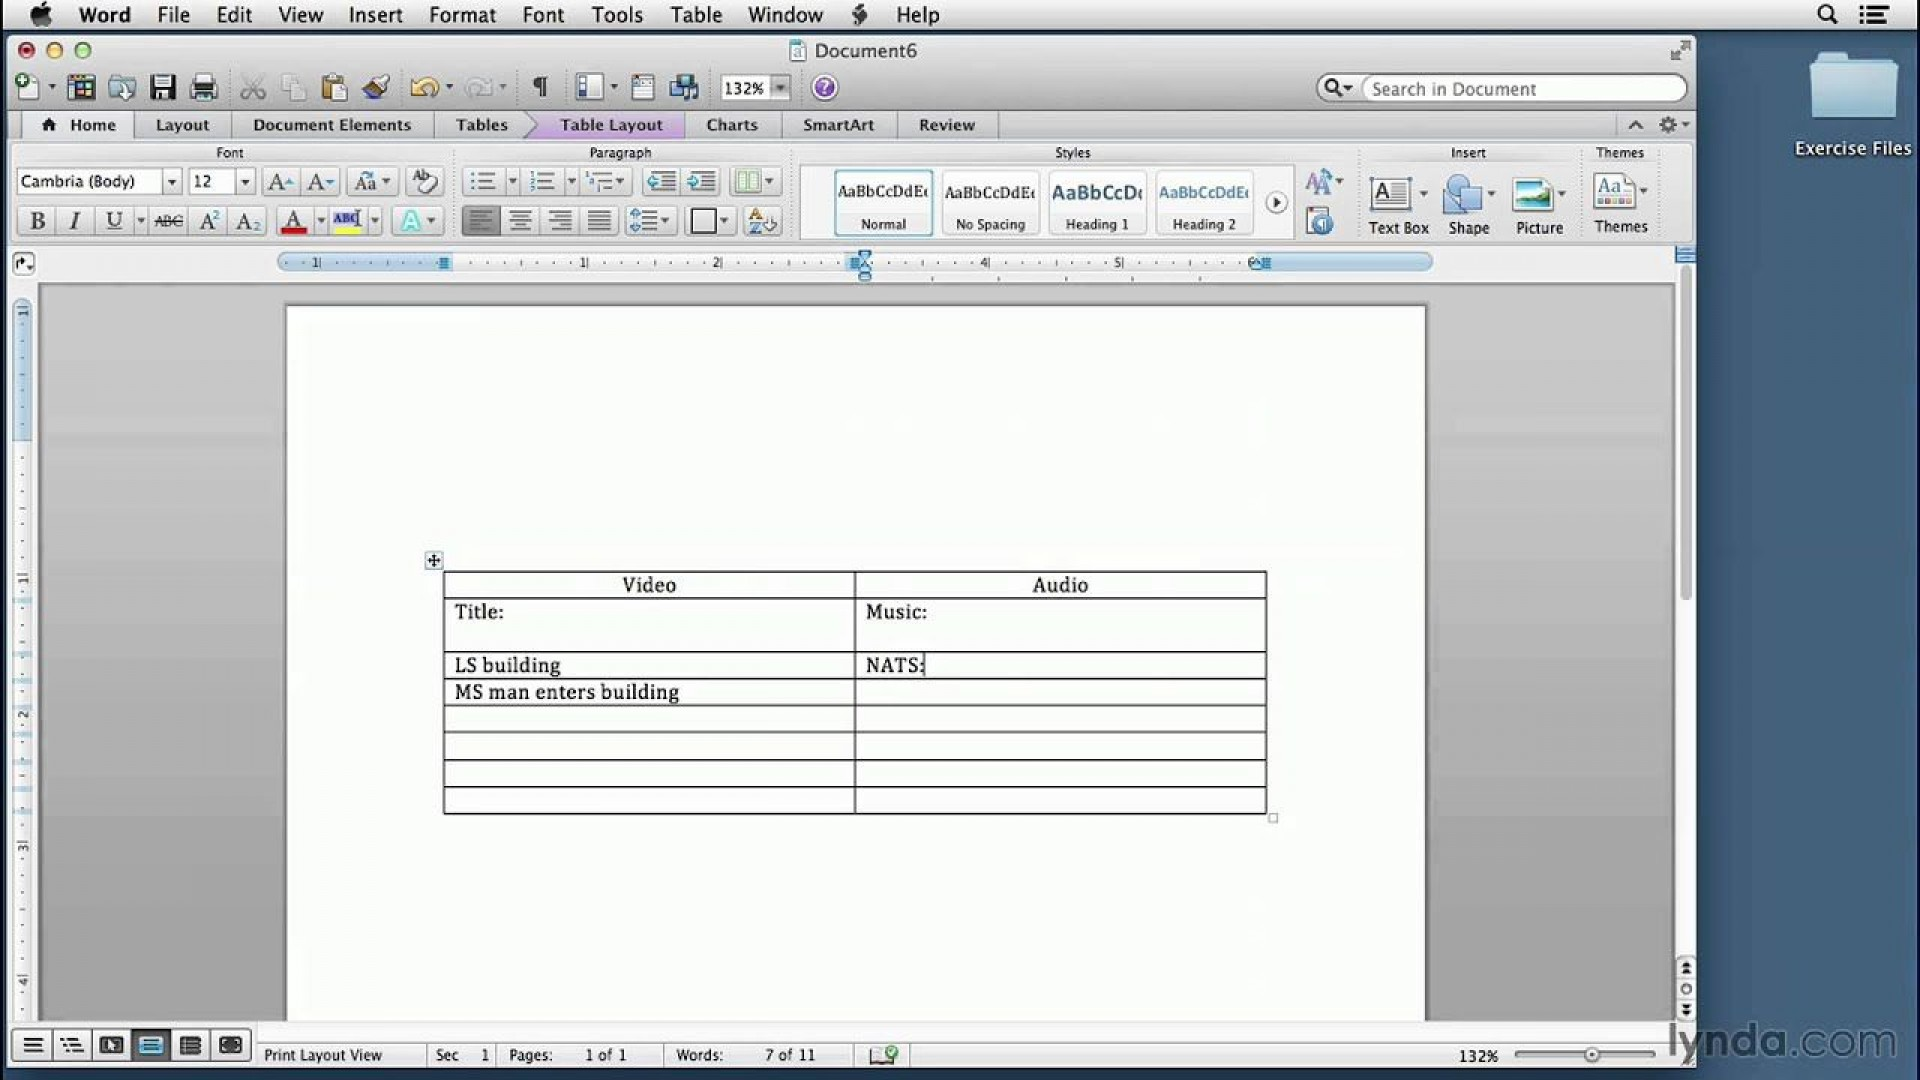 001 Surprising How To Use Microsoft Word Screenplay Template Highest Clarity 1920